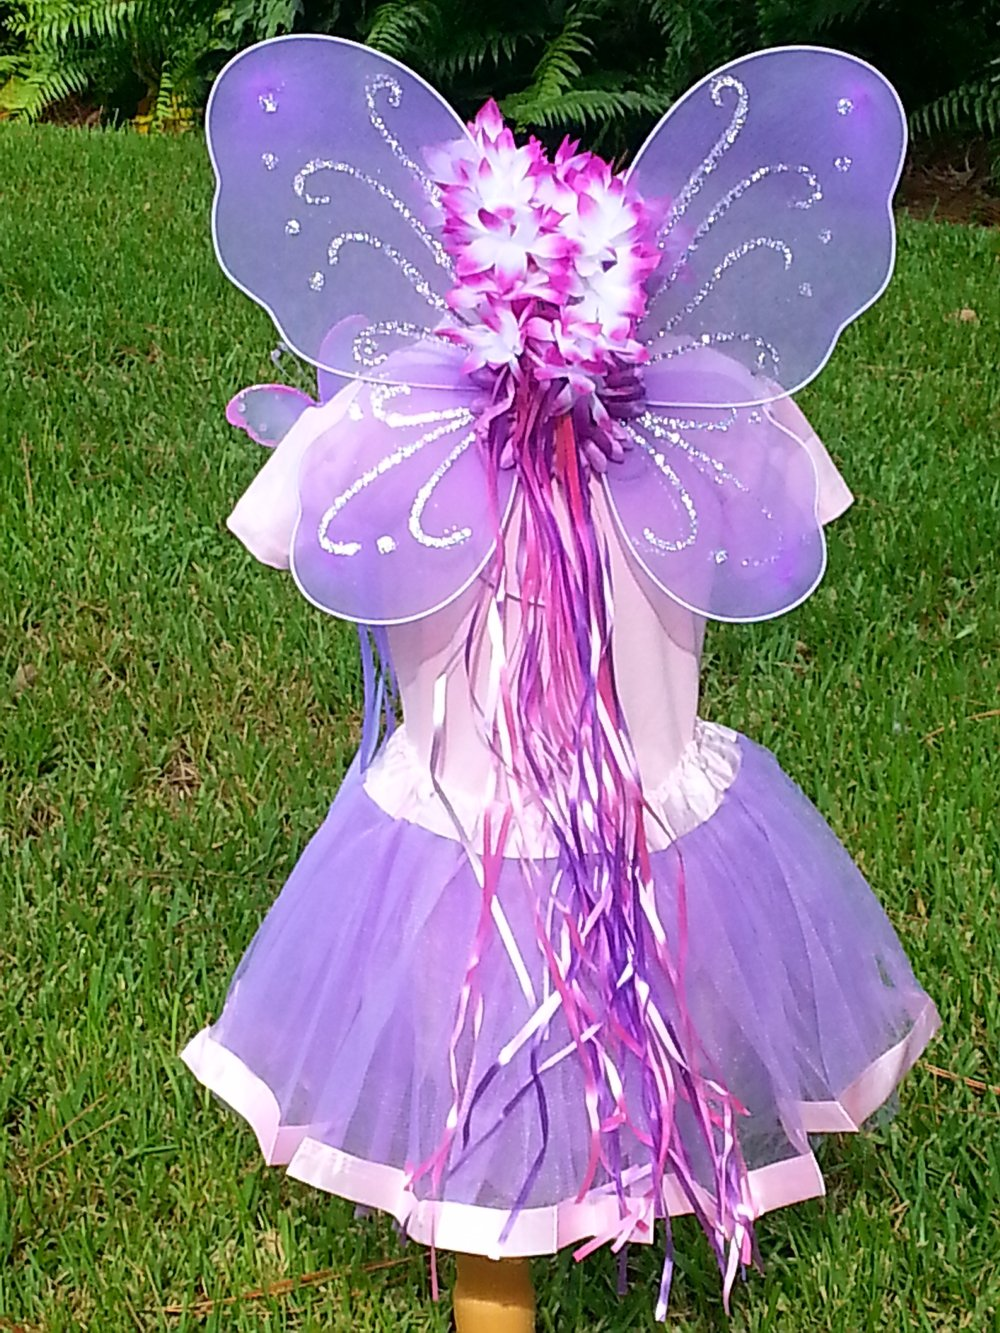 5 PC Girls Lavender and Pink Fairy Set with Wings, Wand, Halo and Flower Clip Age 2-7 by Fairytale Play